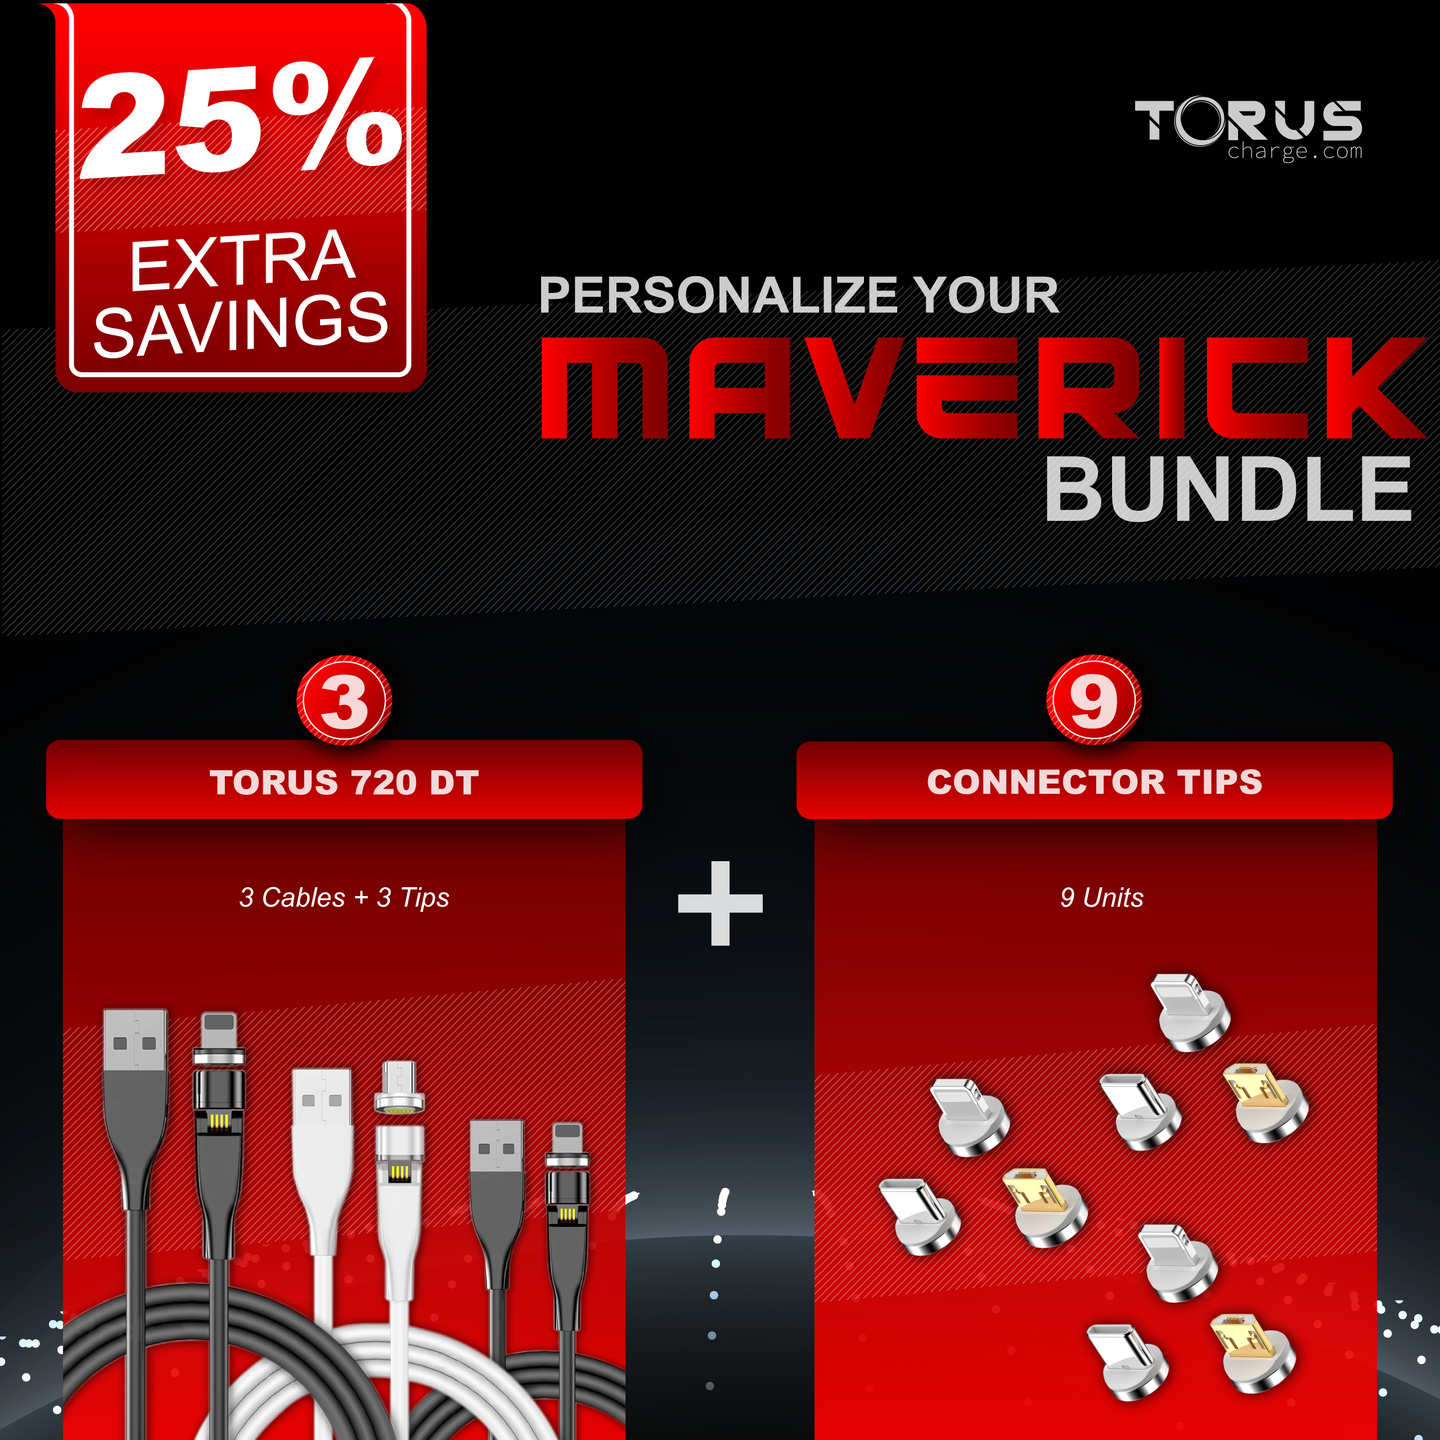 Torus Charge TorusCharge Bundle Maverick Save 25% Includes Torus 720 DT Piano Black or White Pearl With One Tip Connector and 9 Connector Tips UsbC Apple MicroUsb Iphone Samsung others